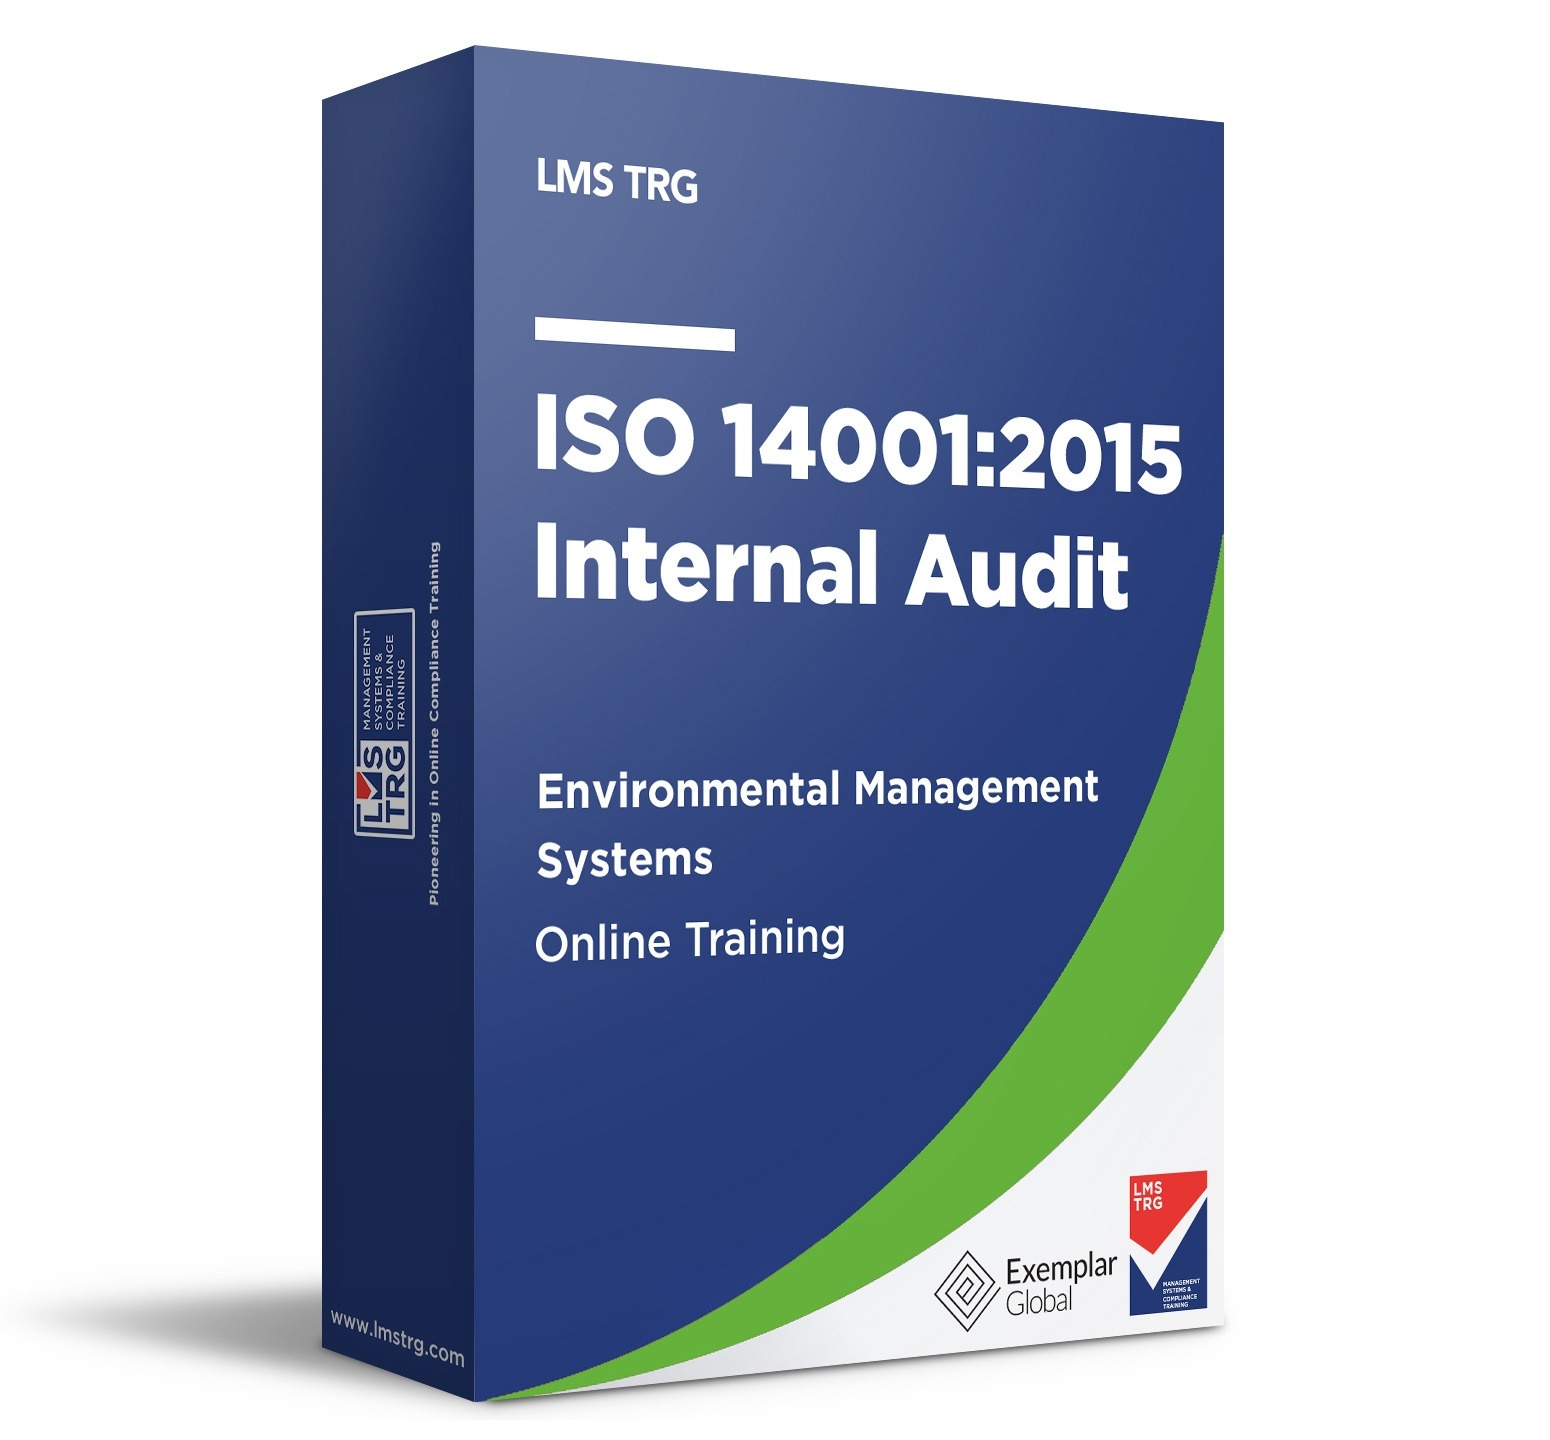 environmental management systems internal auditor ISO 14001